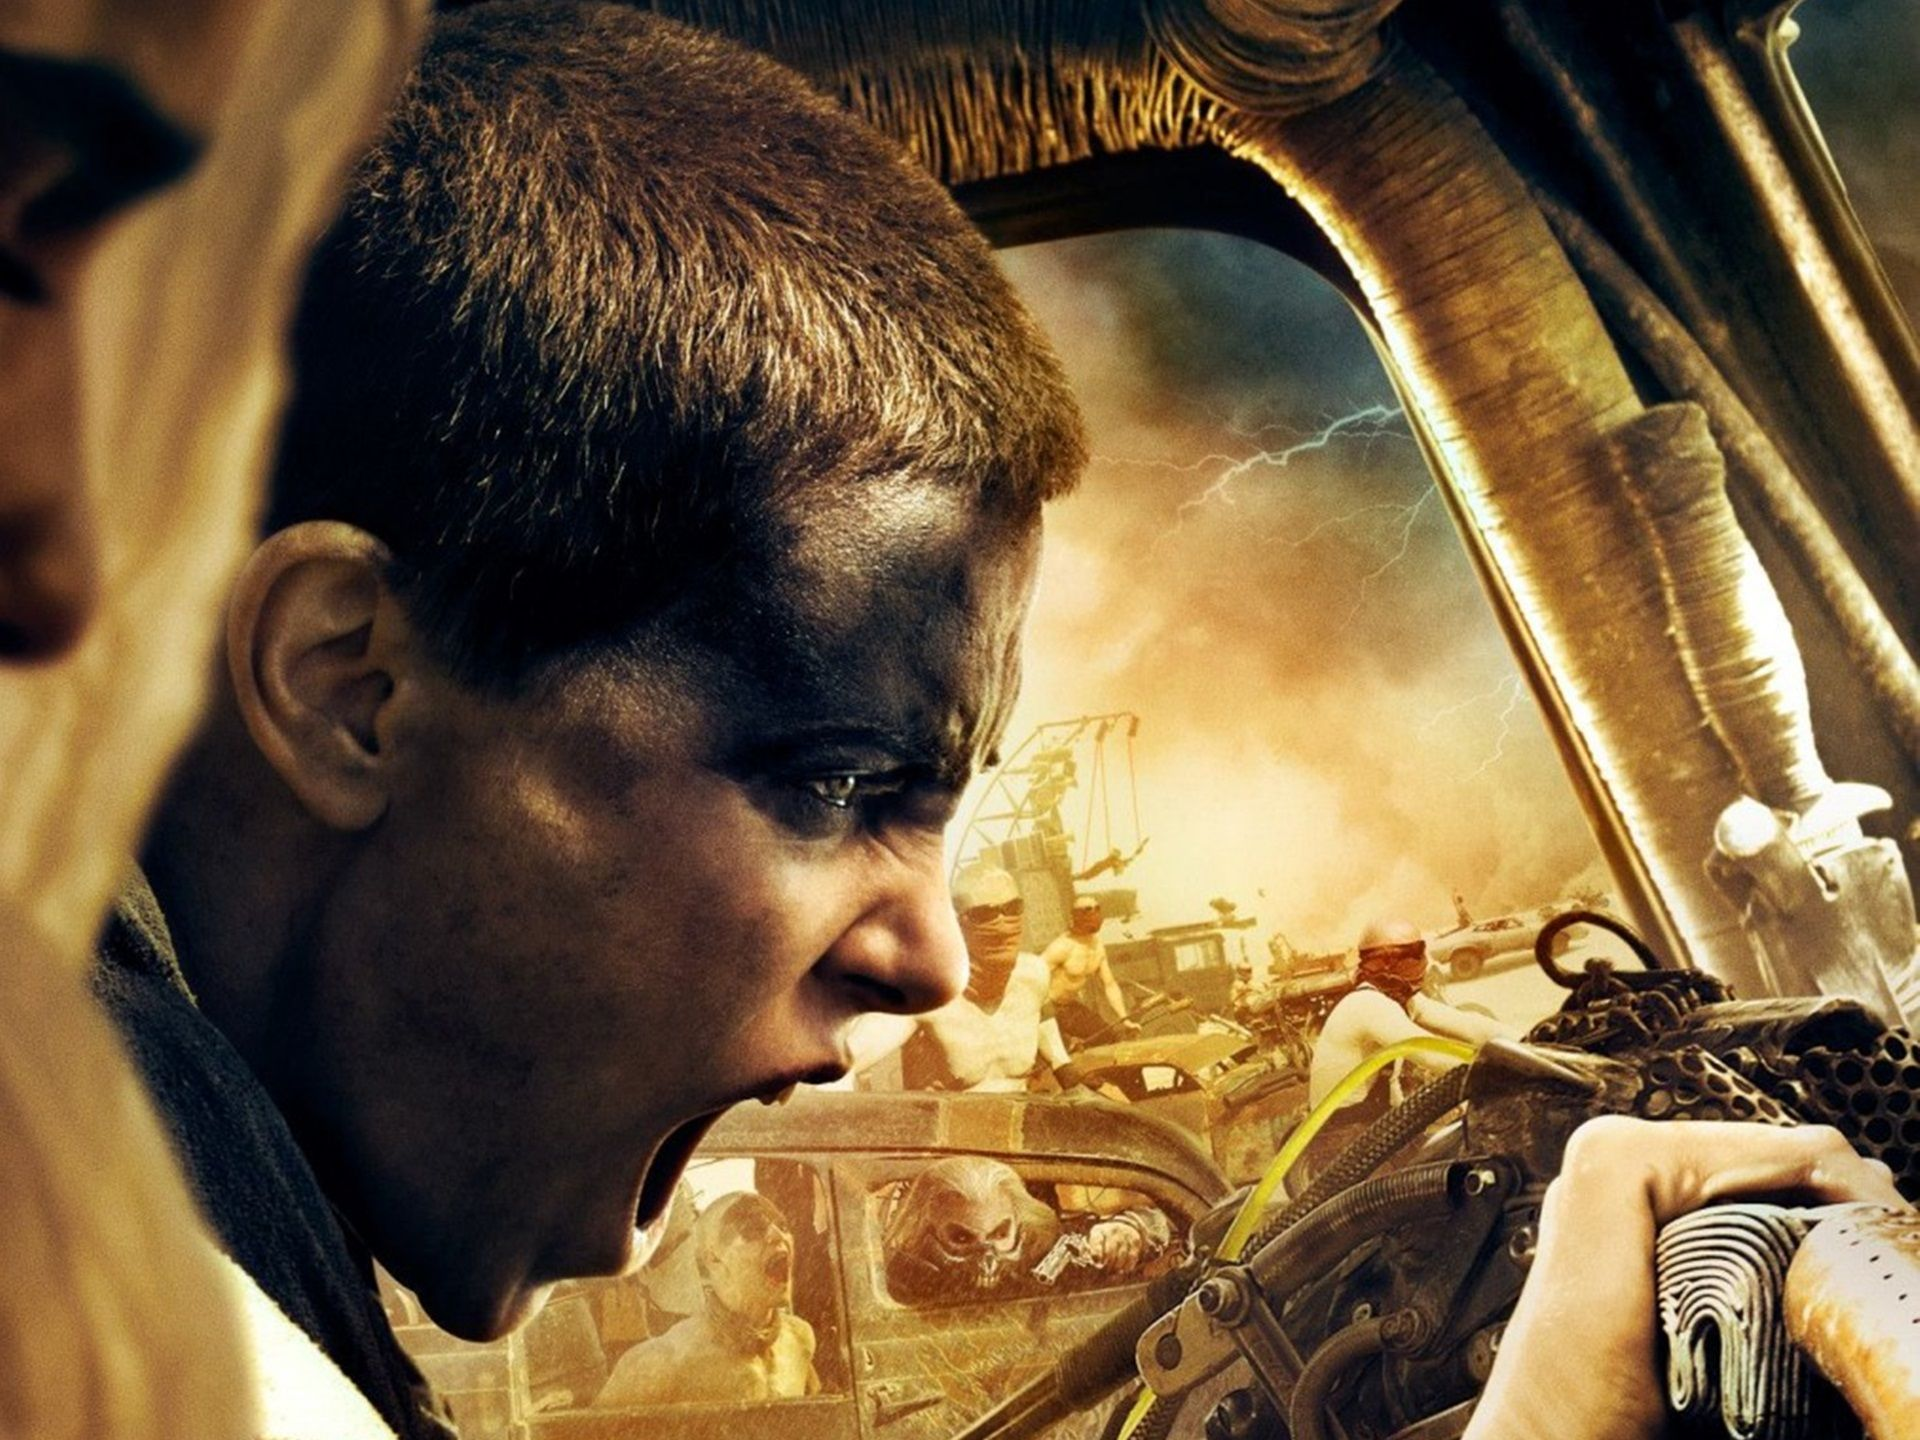 Charlize Theron Mad Max Mad Max Fury Road Charlize Theron As Imperator Furiosa Wallpaper Films Complets Peinture Figurine Film Entier